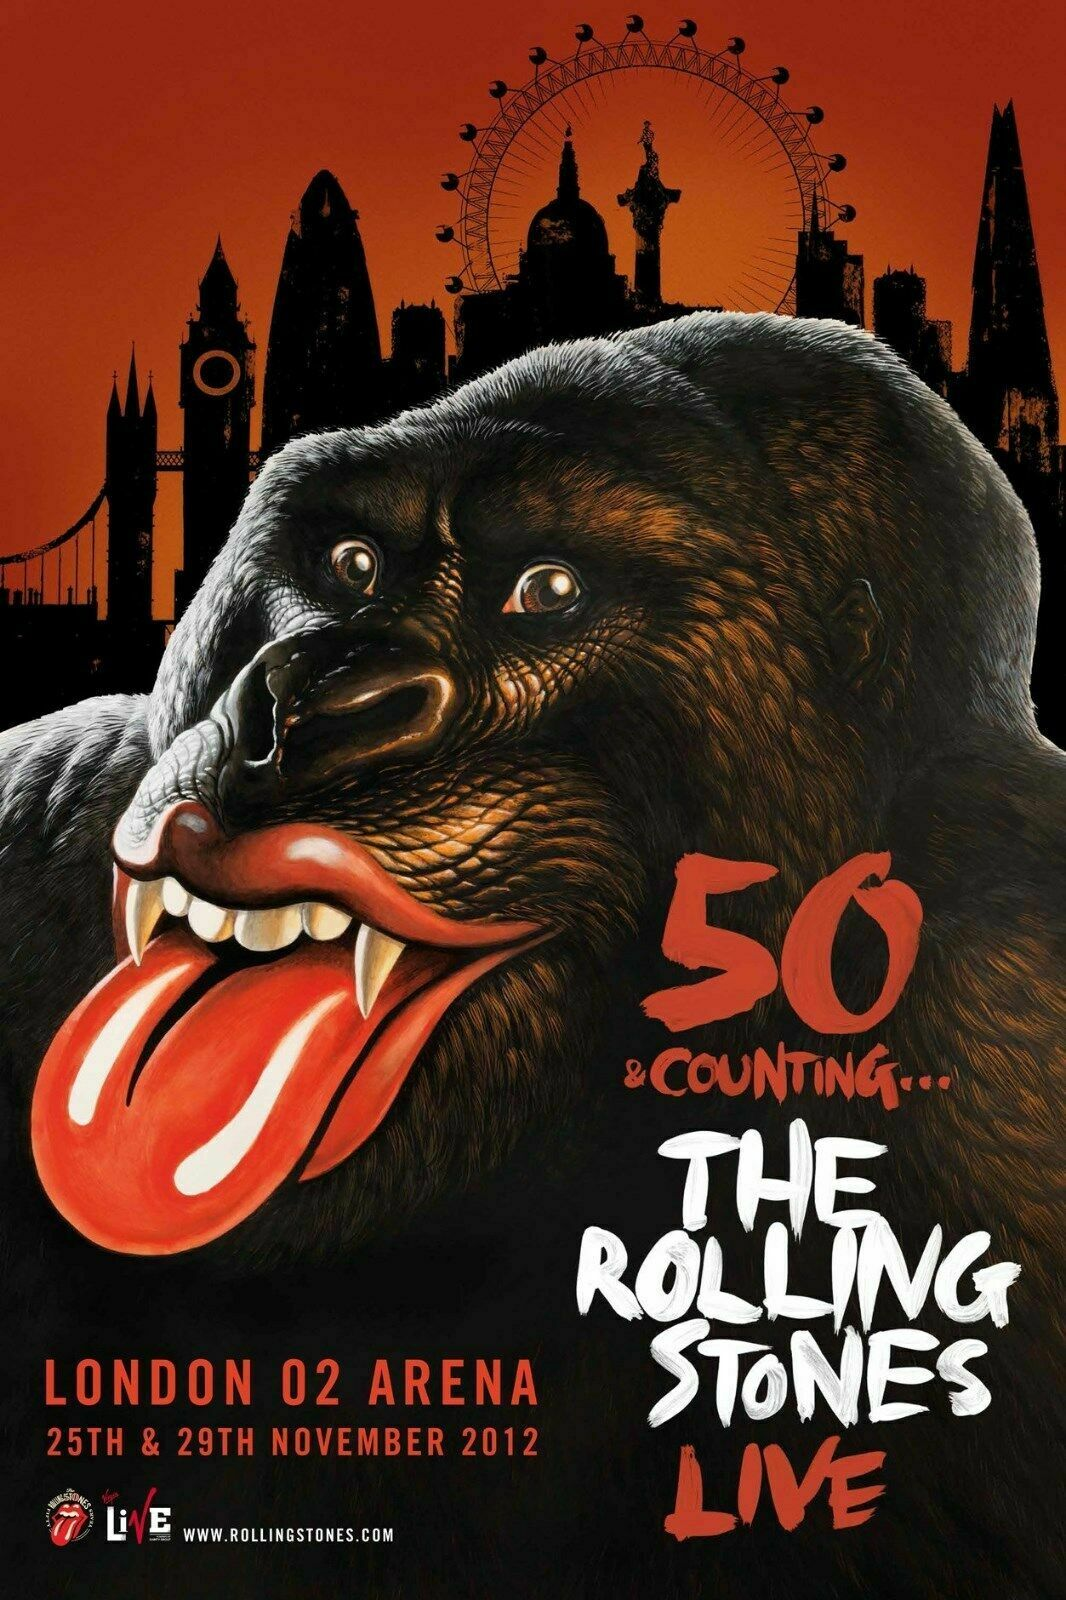 ROLLING STONES 50 COUNTING LIVE 2012 LONDON, UK CONCERT TOUR POSTER - Rock - $11.99